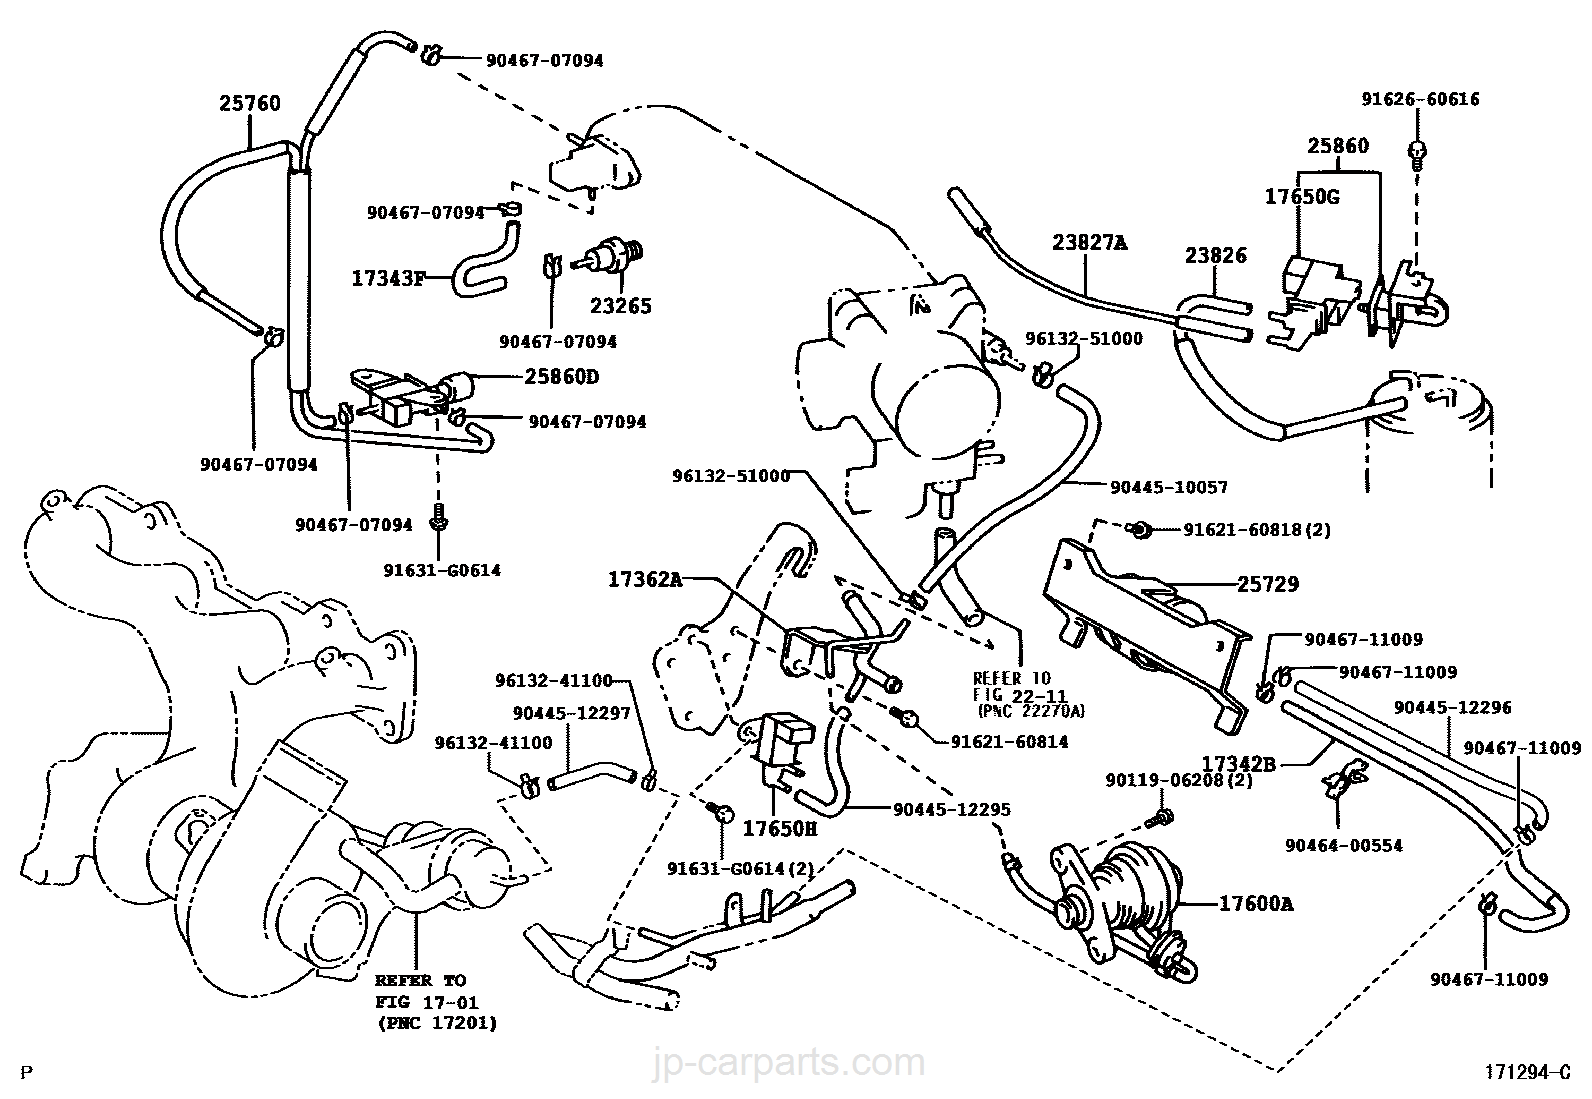 Subaru Engine Swap To Vw Wiring additionally Index php additionally E28 Engine Timing furthermore Toyota Beams Engine further Ka Plugs On Rb T385829. on 3sgte wiring diagram